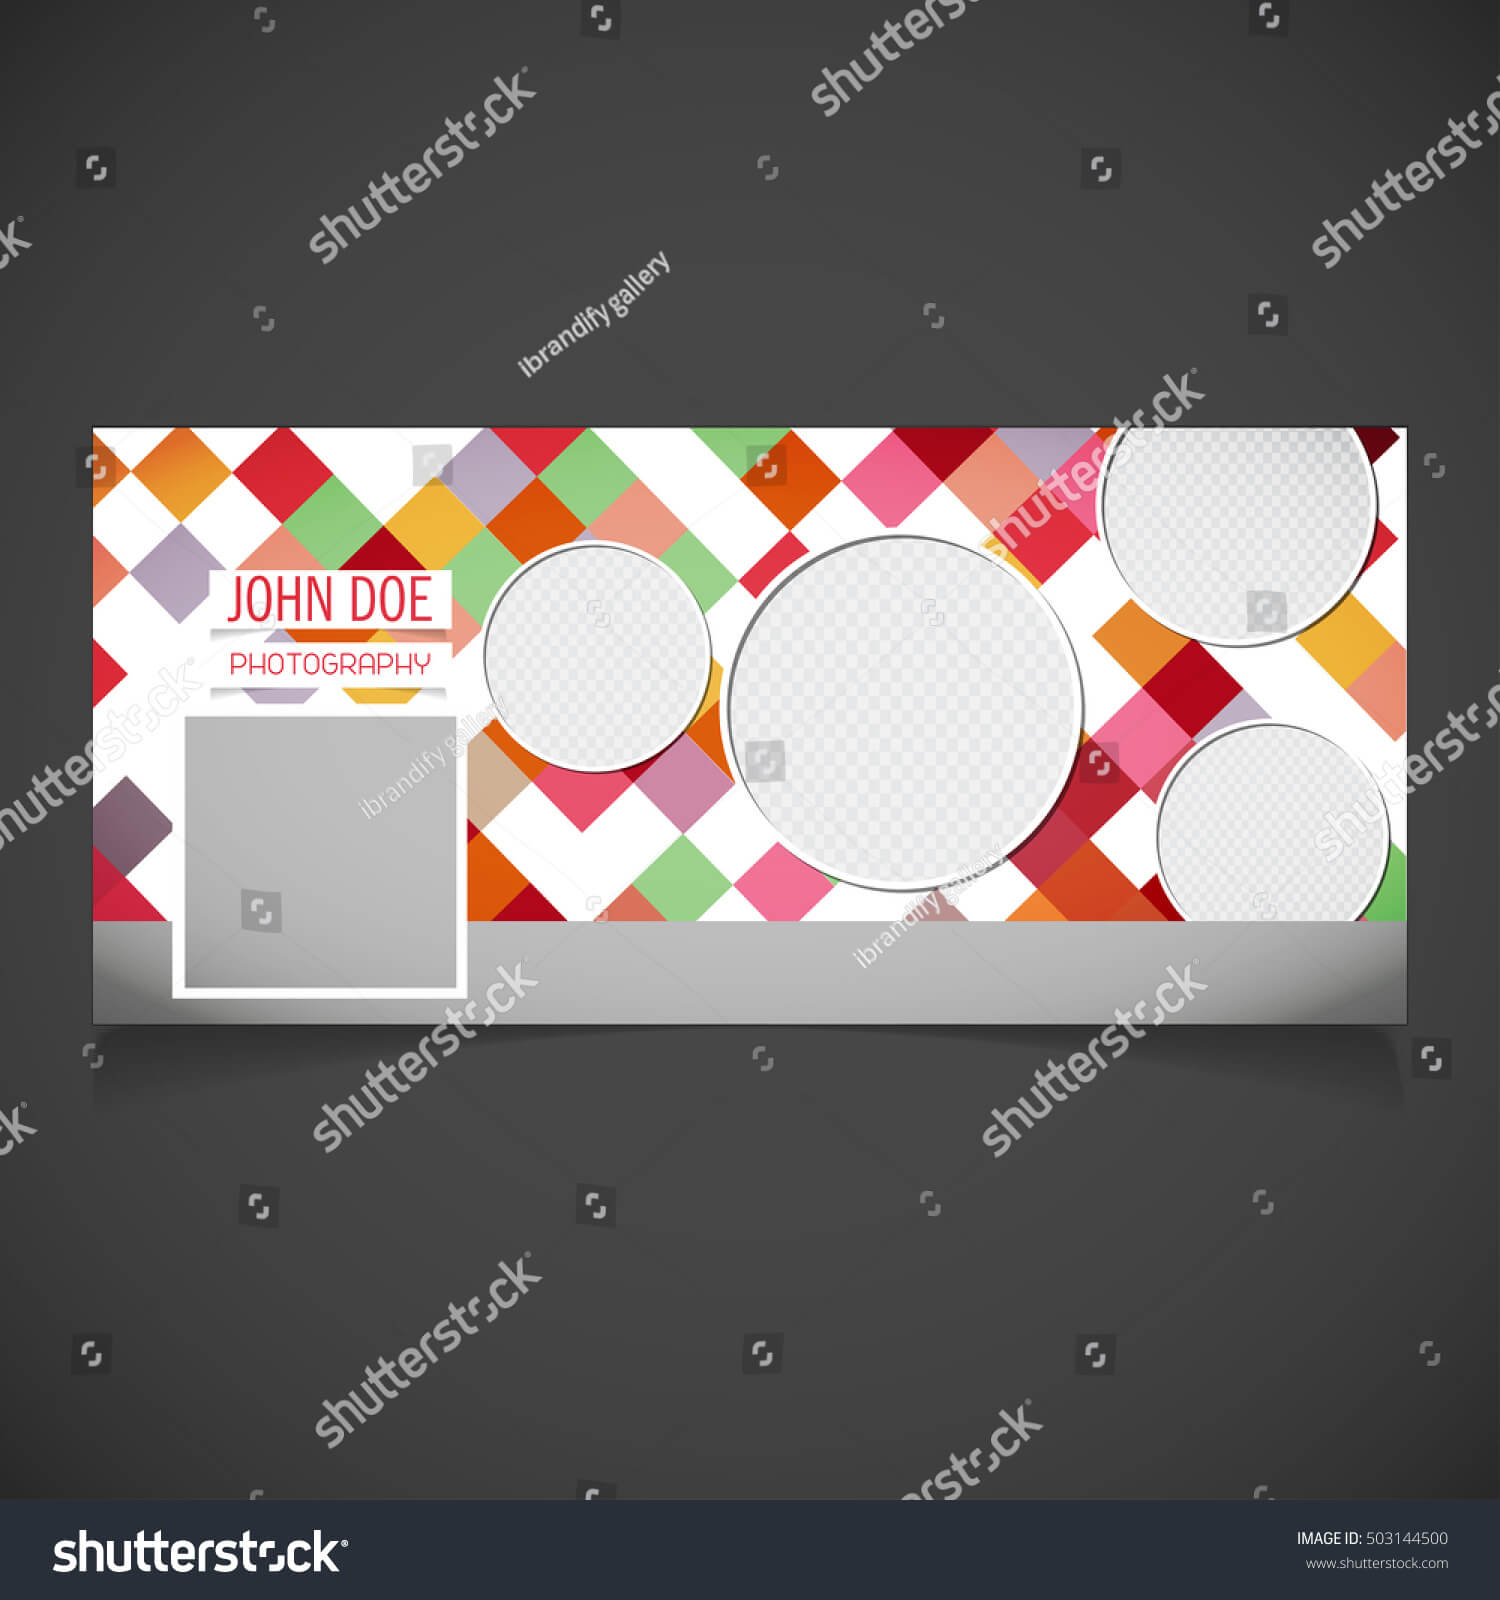 Creative Photography Banner Template Place Image Stock With Regard To Photography Banner Template